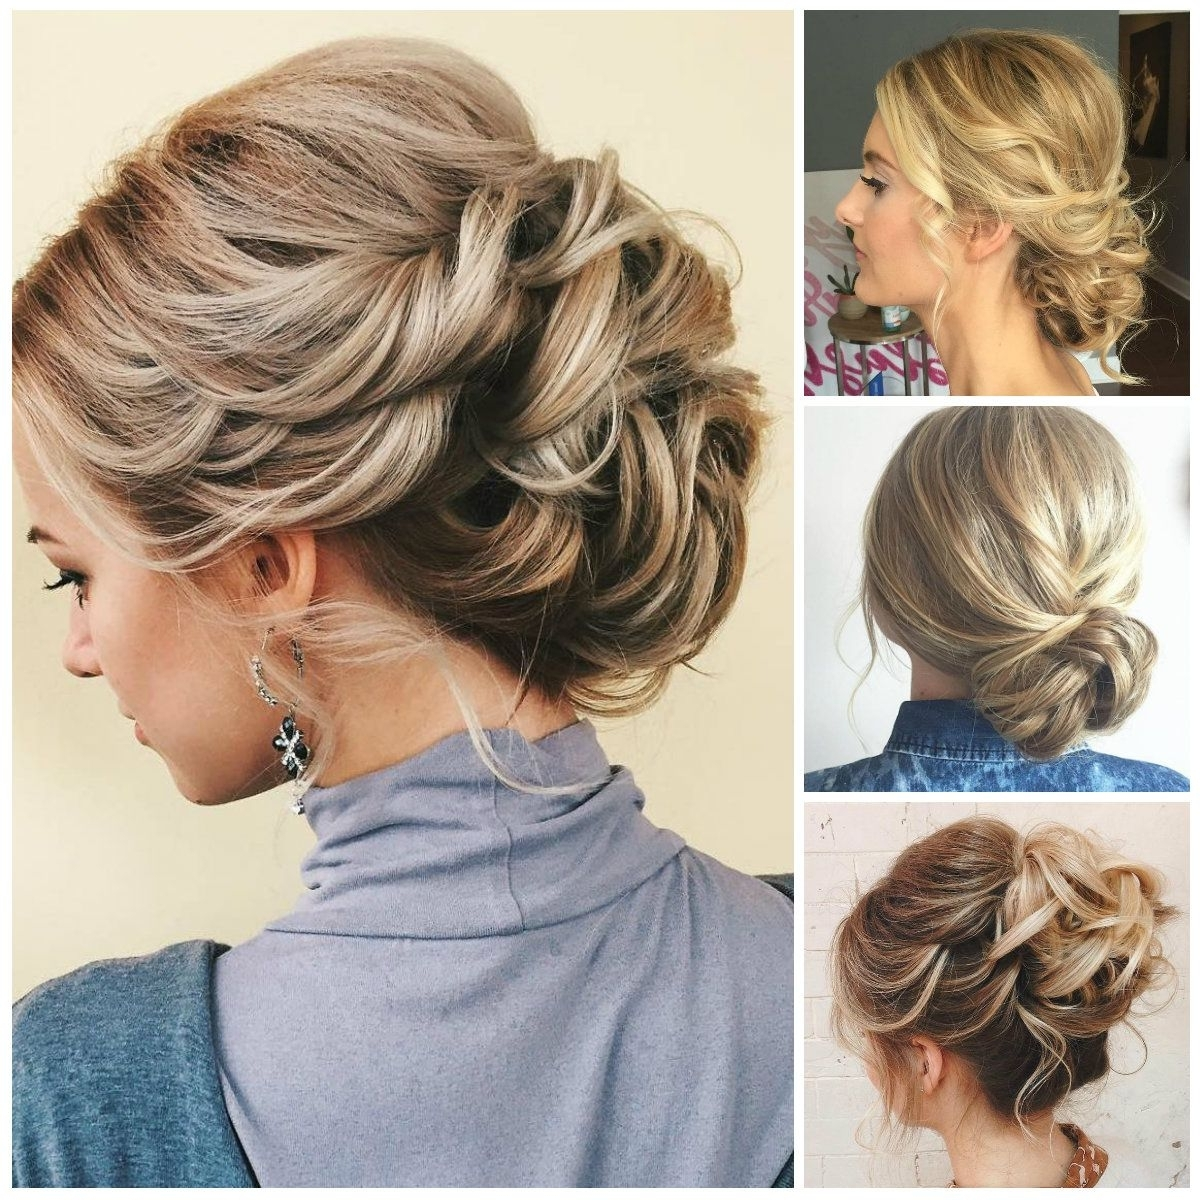 Image Result For Upstyles 2017 | Upstyles Wedding | Pinterest | Thin With Regard To Updos For Fine Short Hair (Gallery 13 of 15)